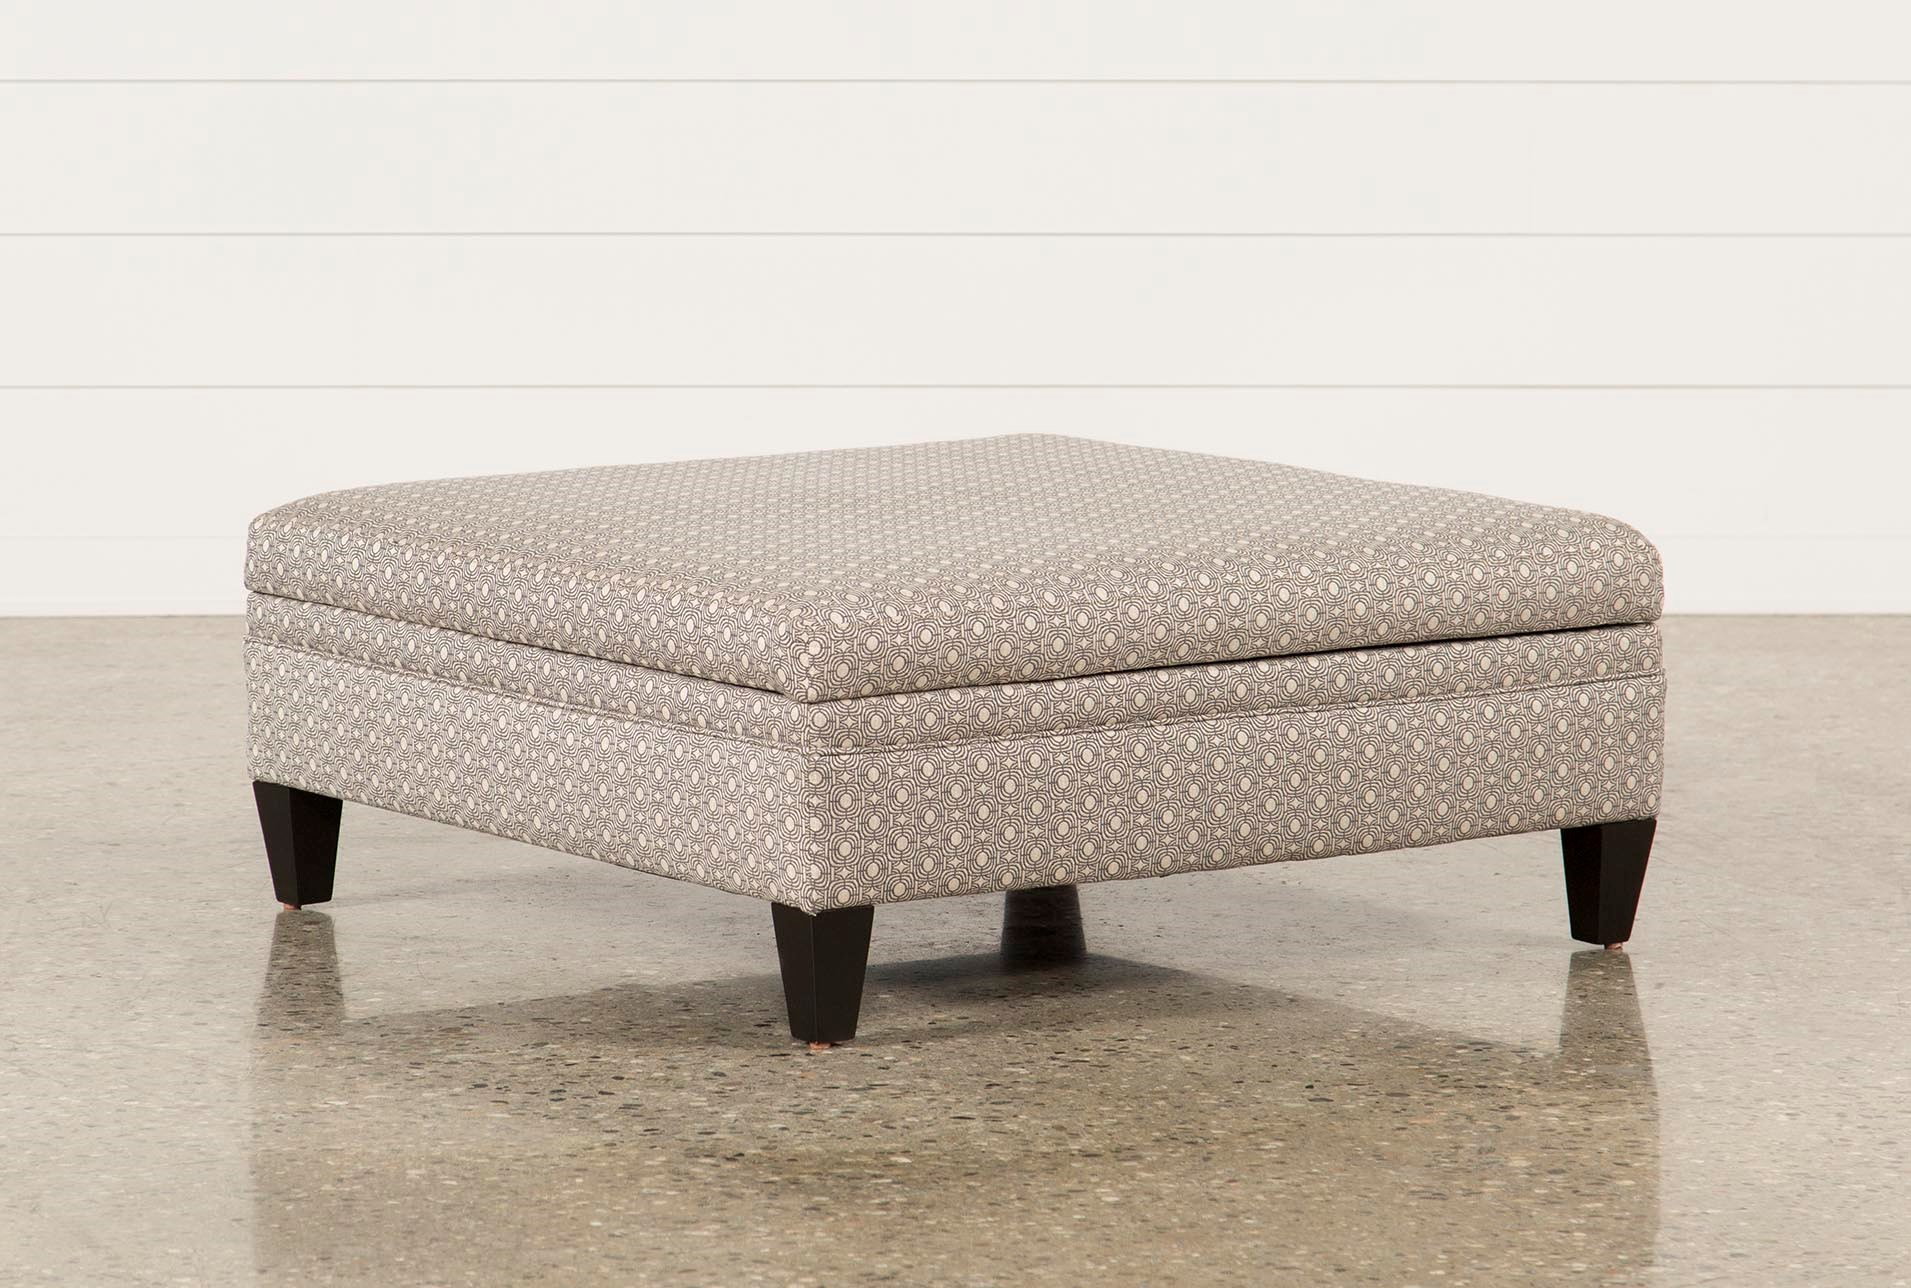 Adler Fabric Large Square Storage Ottoman Qty 1 Has Been Successfully Added To Your Cart